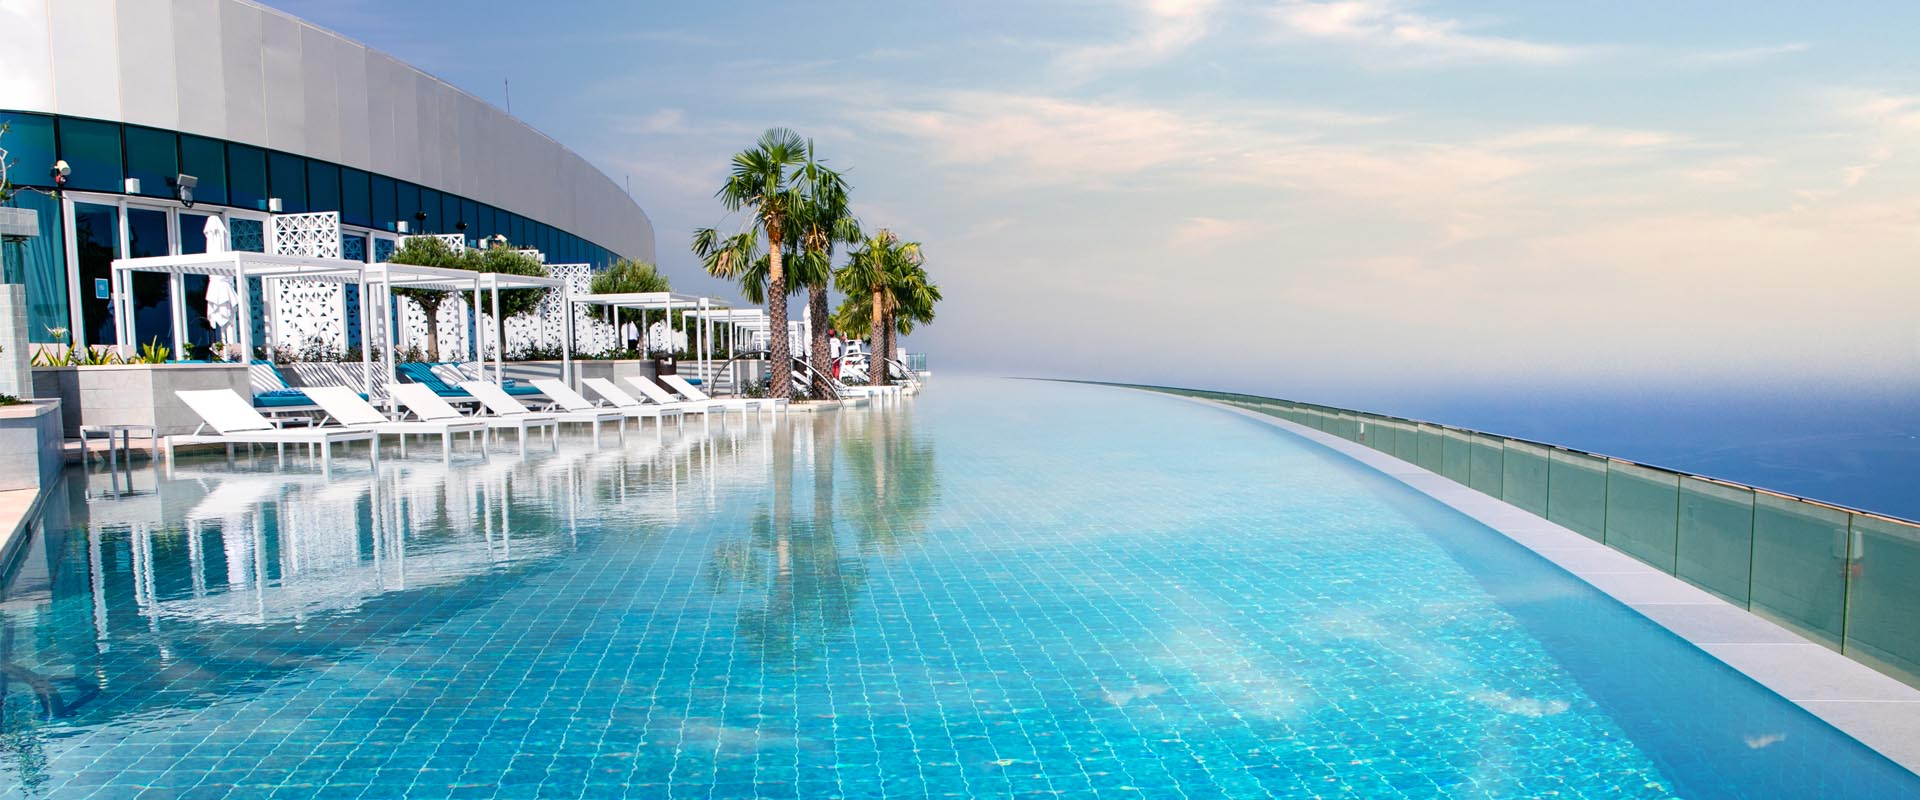 addres-palm-swimming-pool-by-desert-leisure